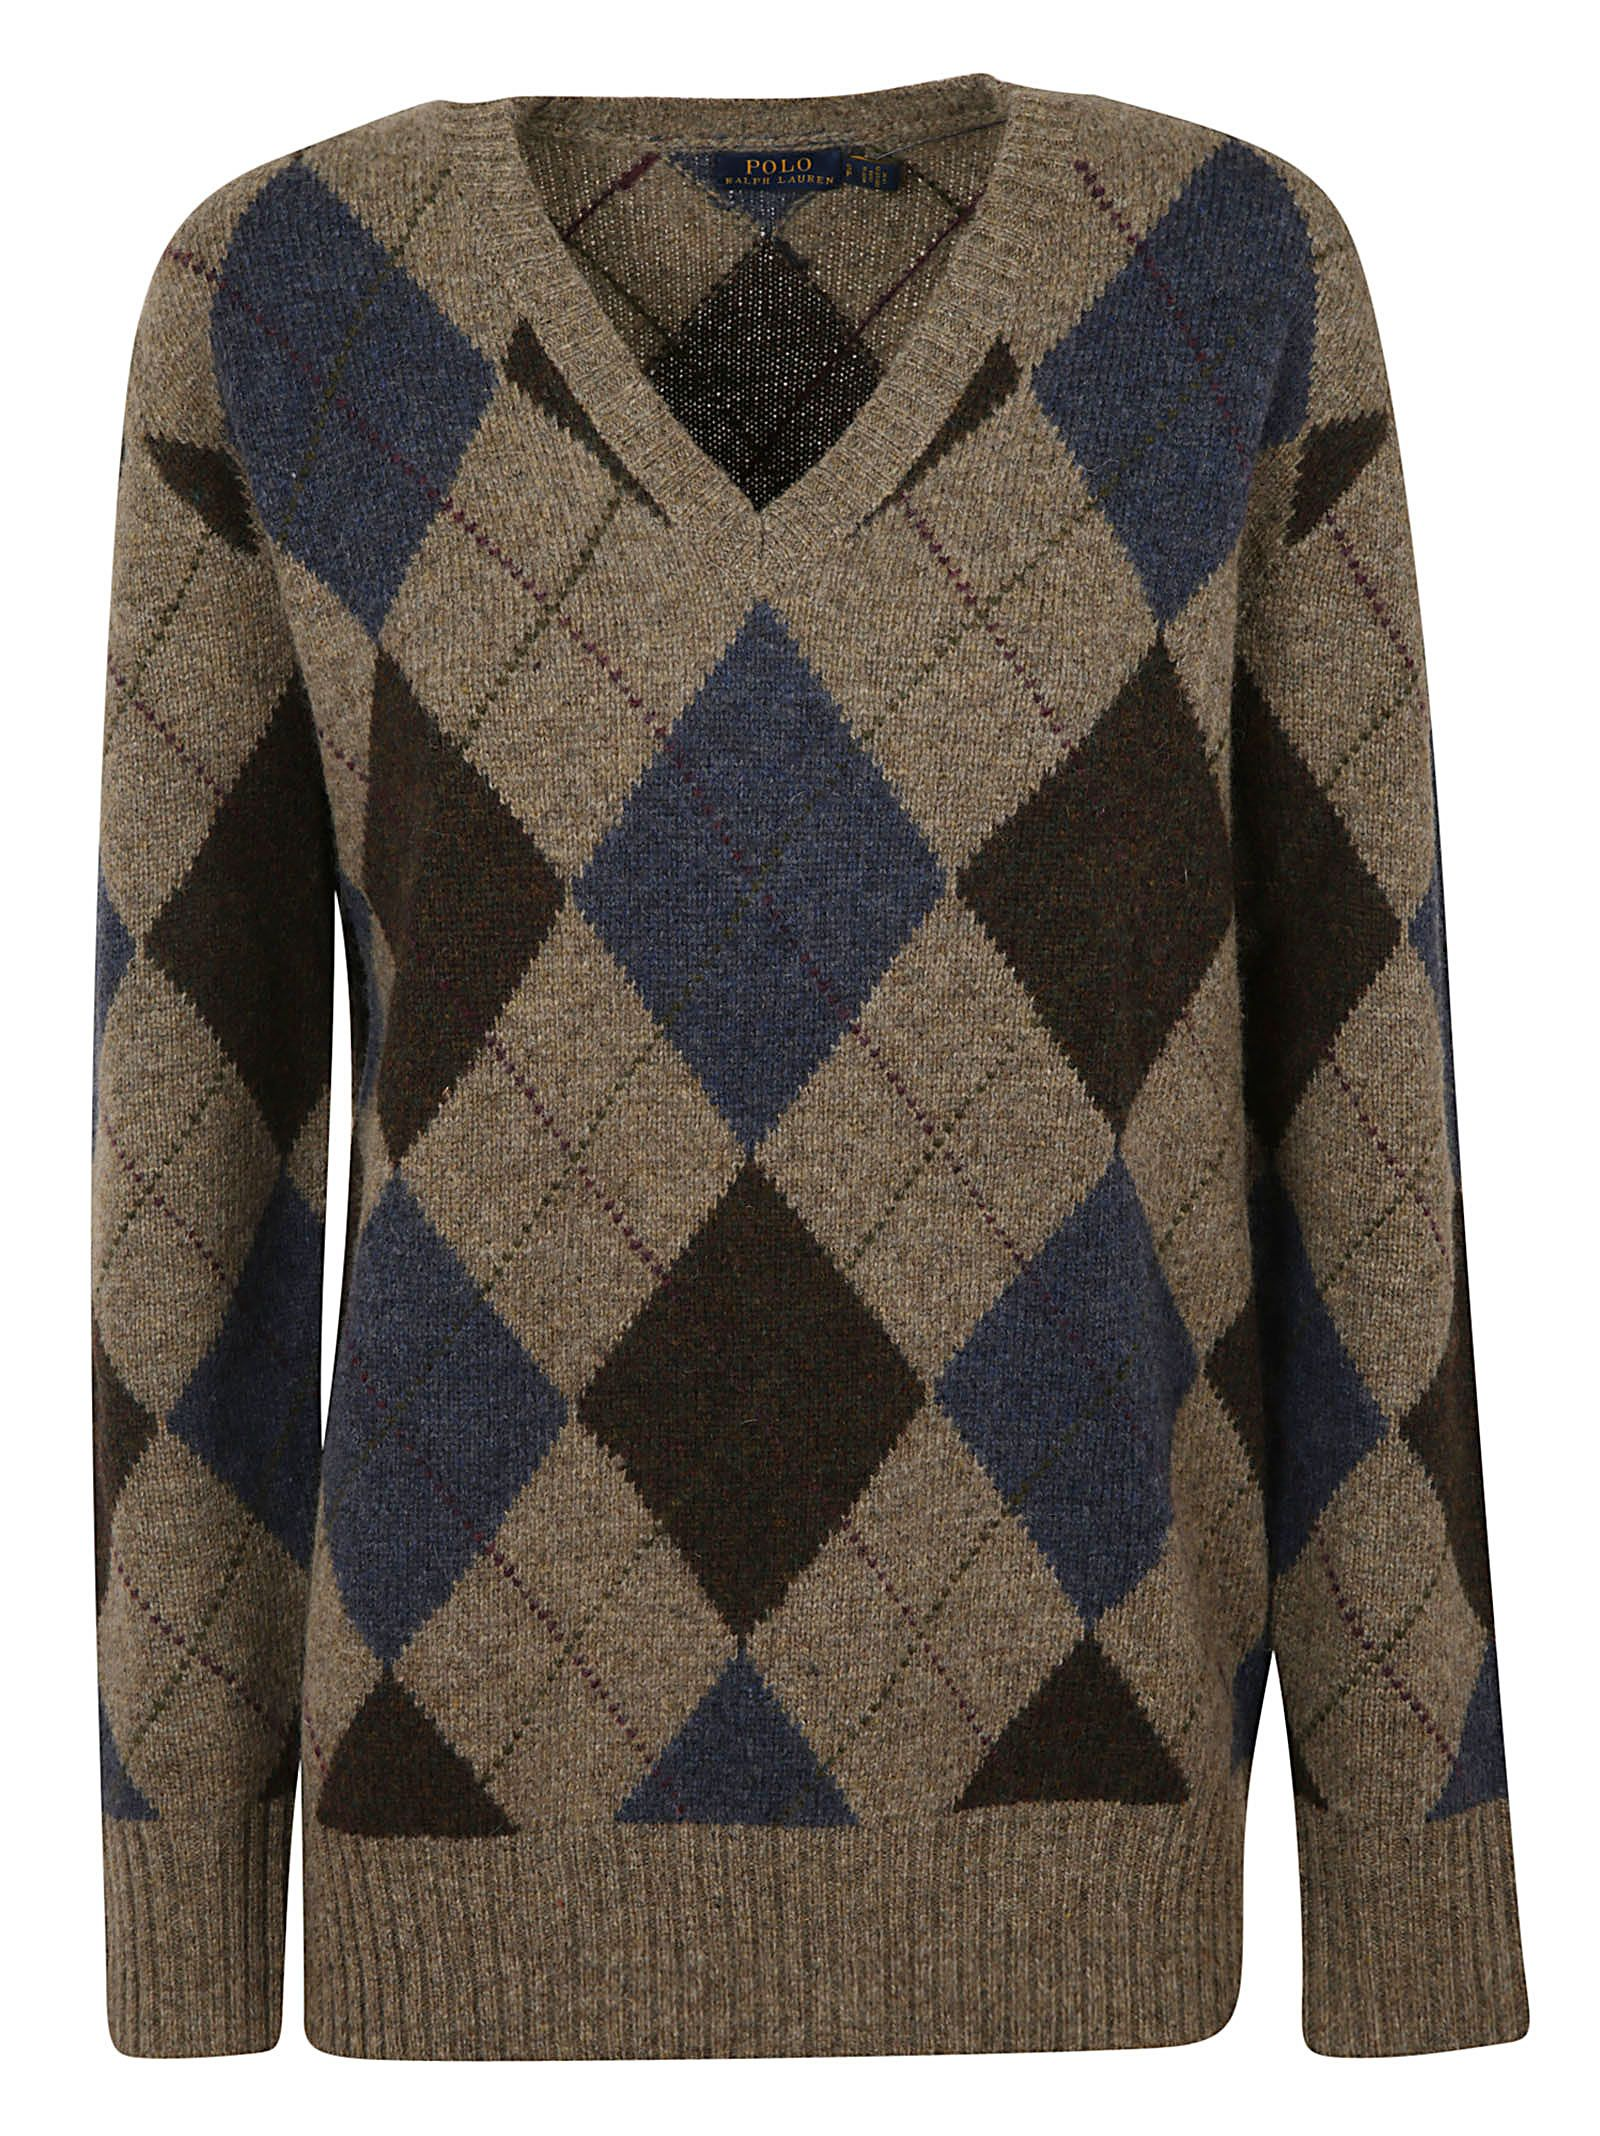 Polo Ralph Lauren Knits ARGYLE PATTERN KNIT SWEATER